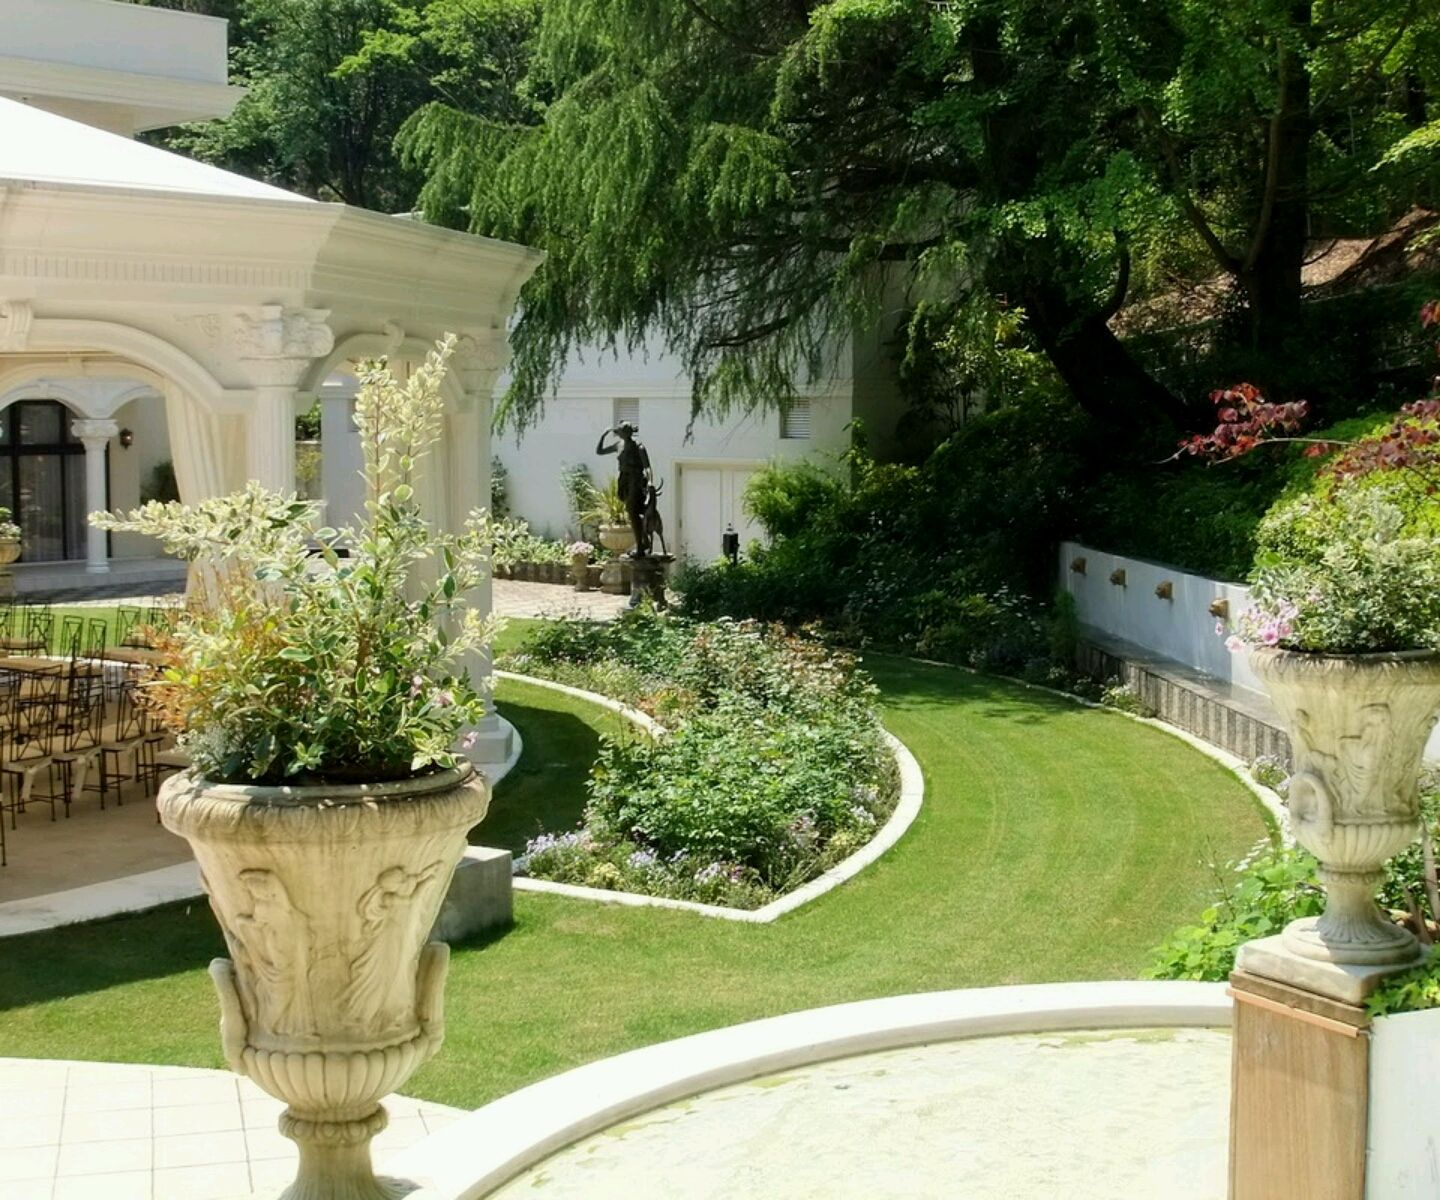 Garden Design Home Gallery Amazing Home Design privitus